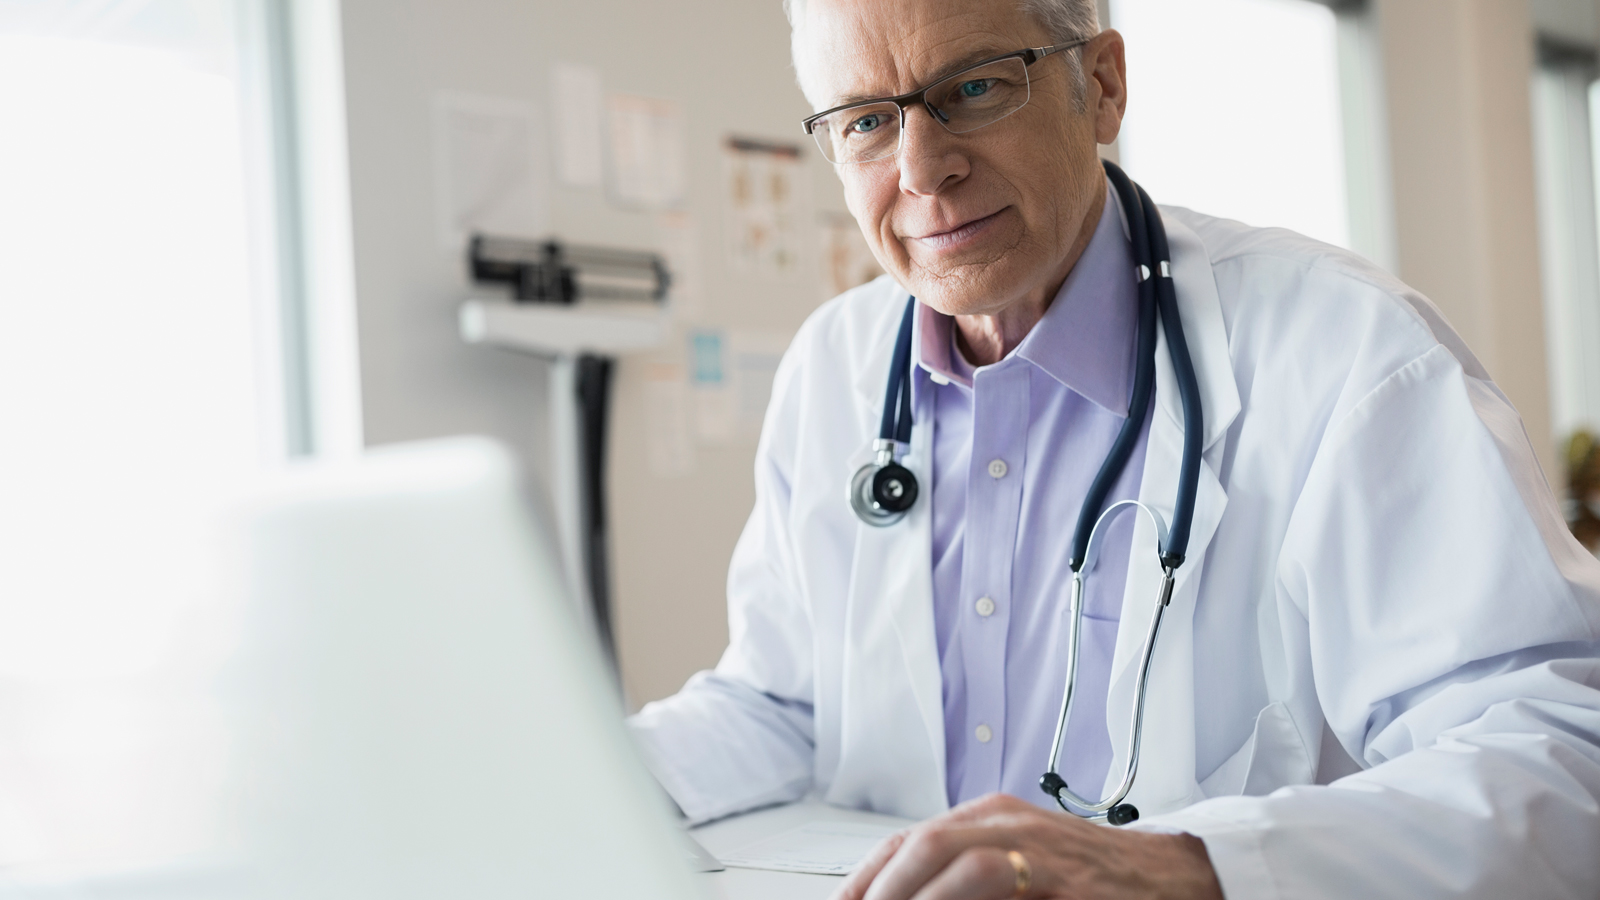 Doctor in office using laptop.